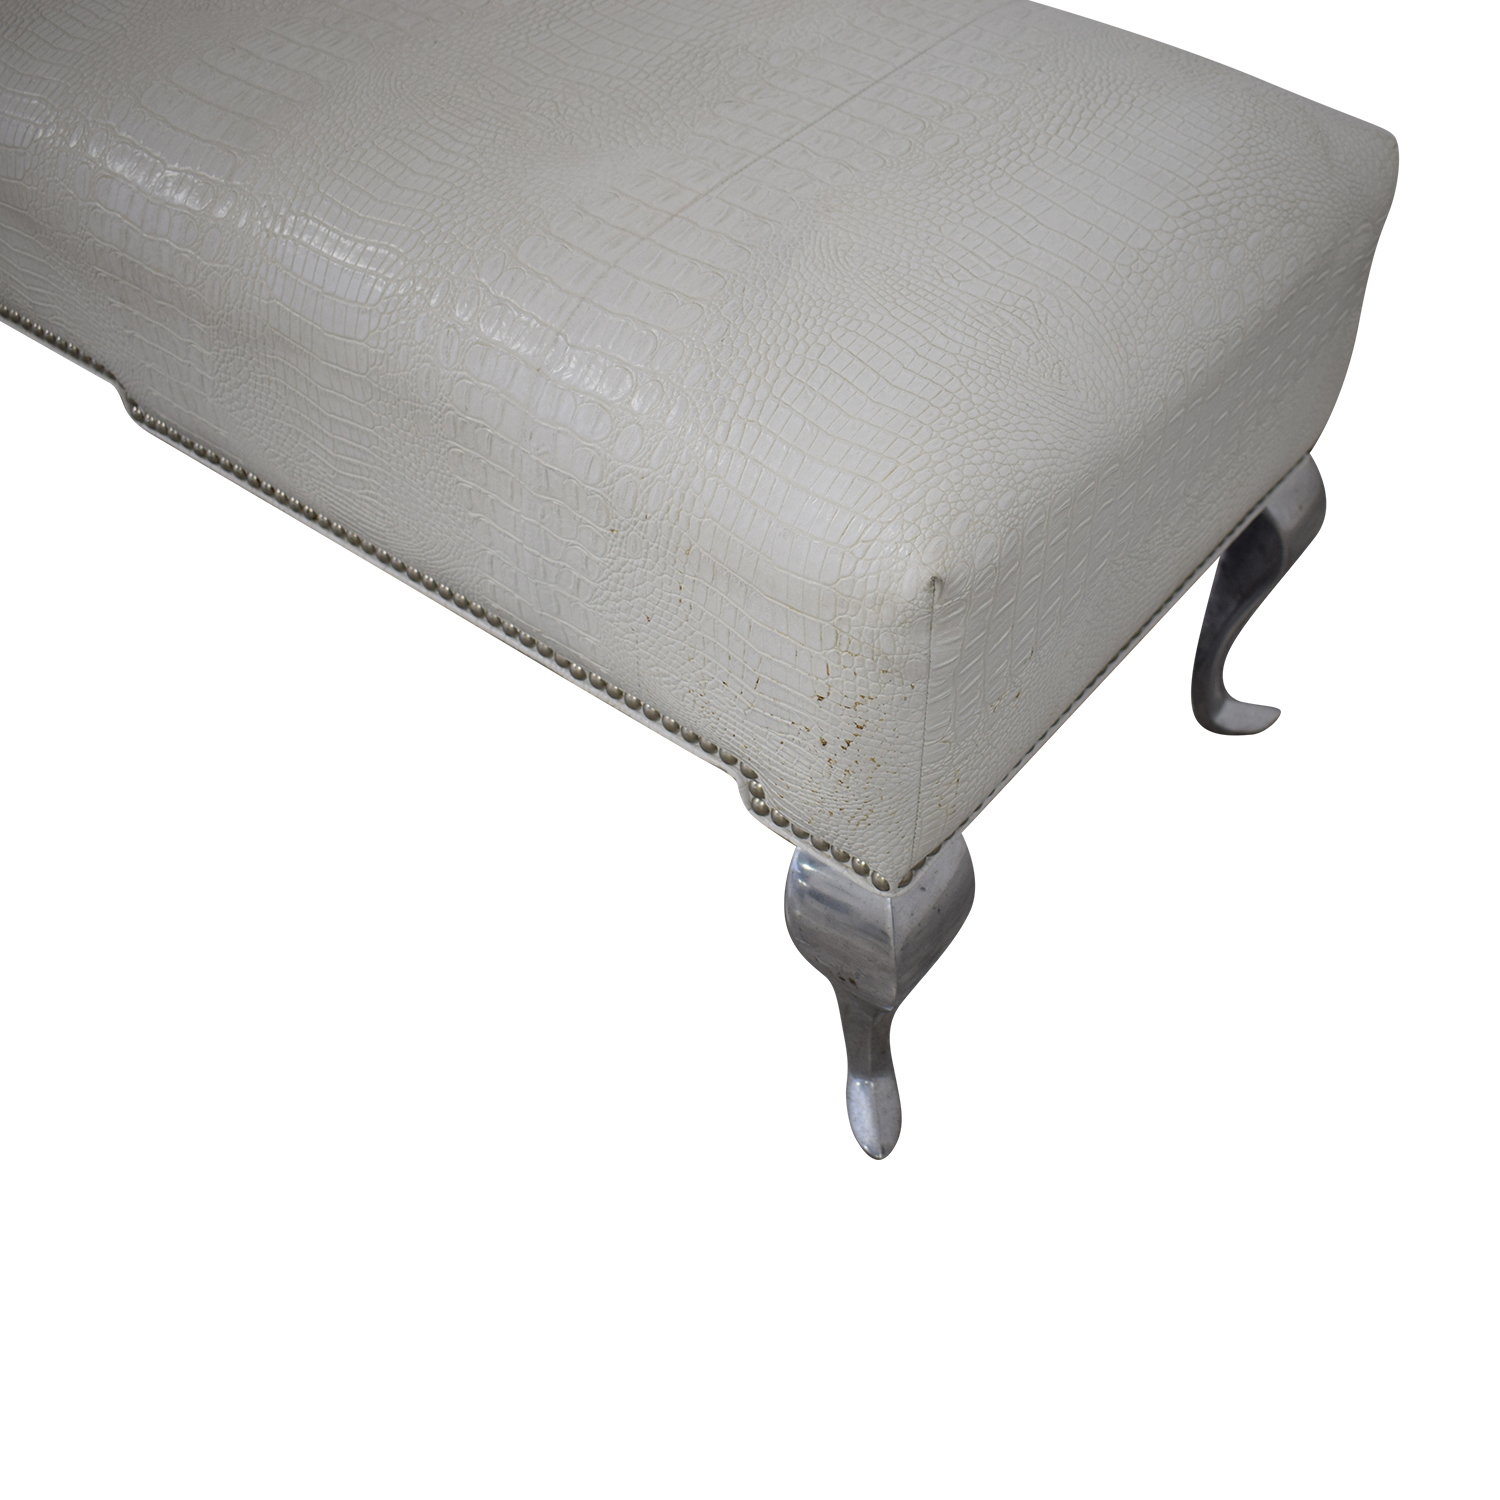 buy Shine by S.H.O Shine by S.H.O. Masters Bench online